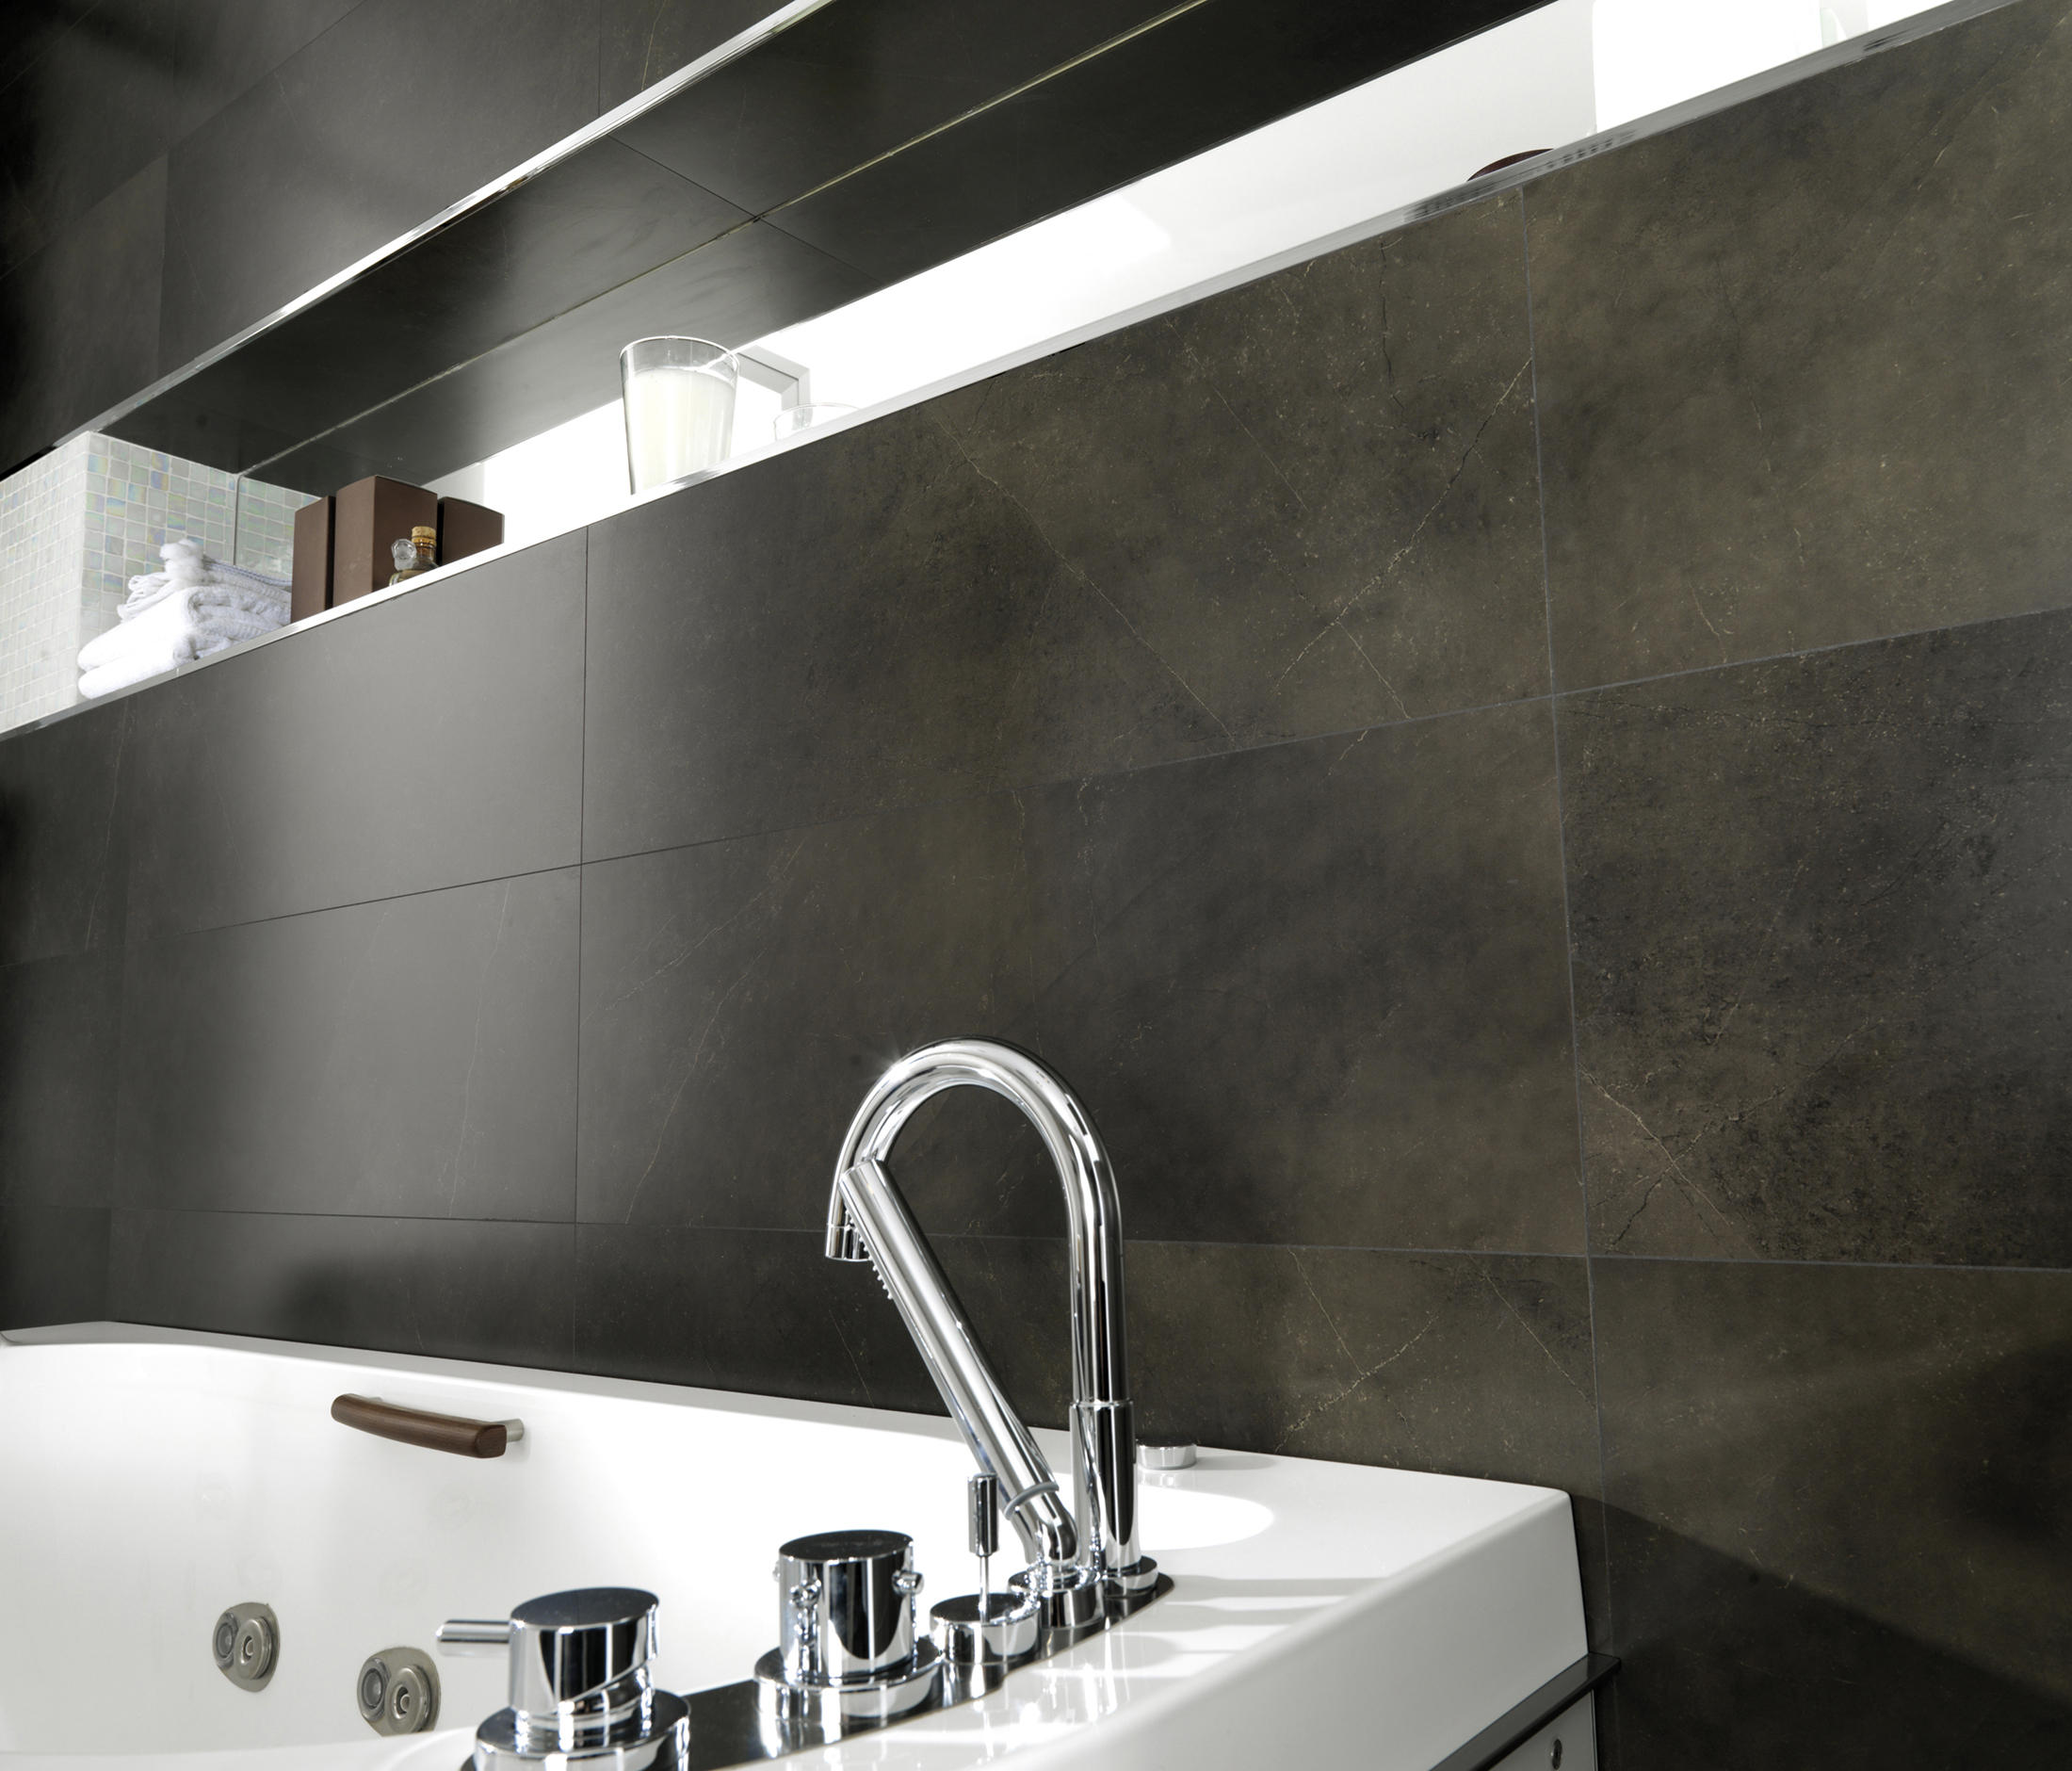 INDIA ARENA - Ceramic tiles from Porcelanosa | Architonic